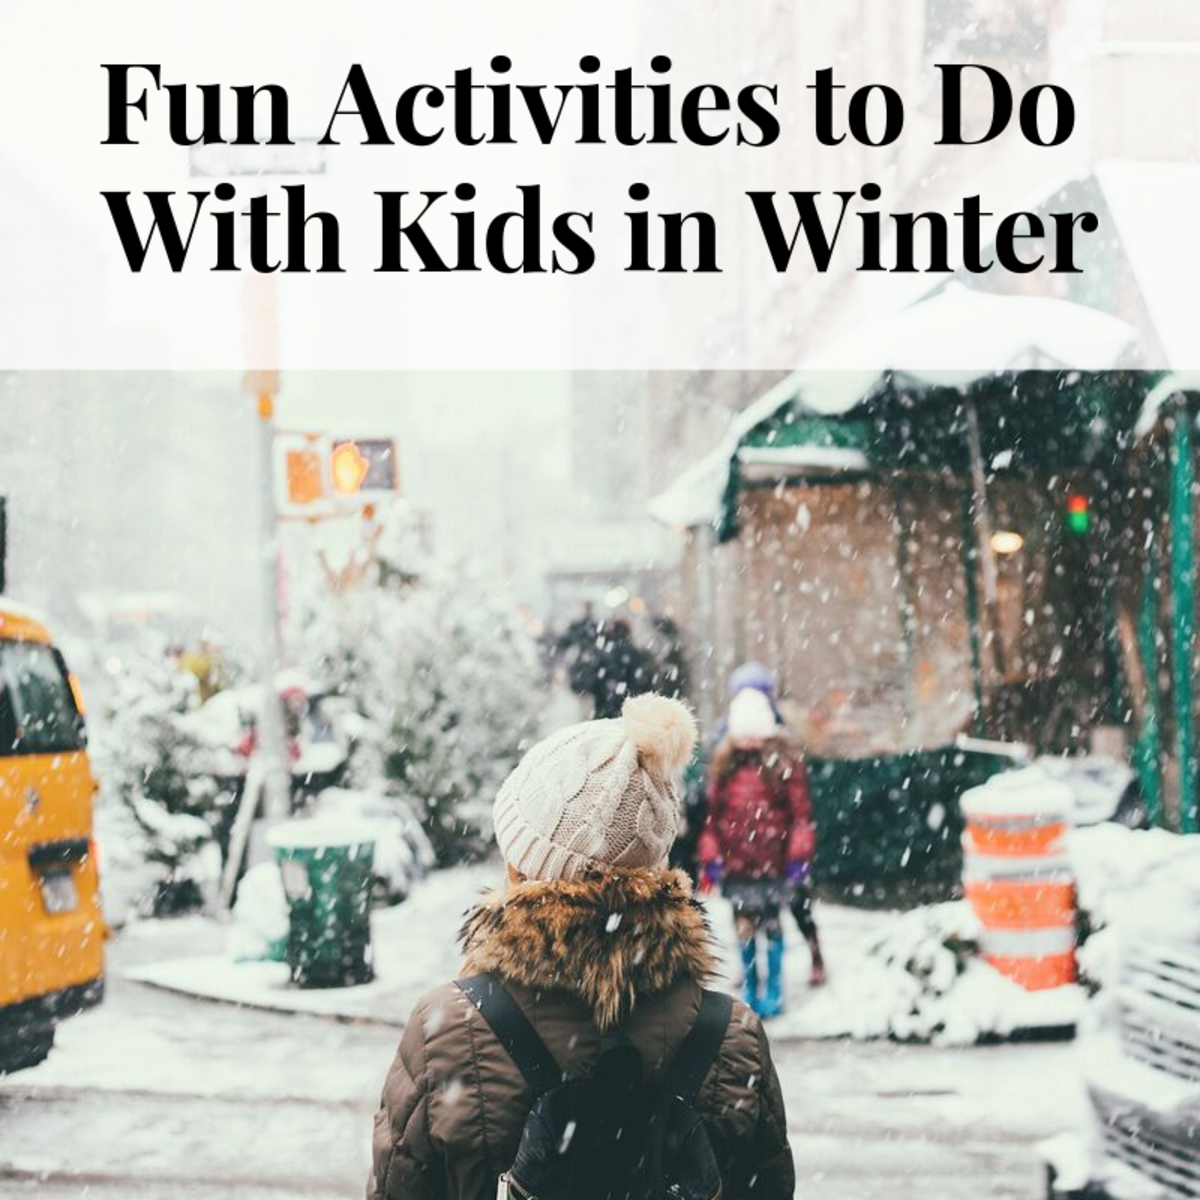 There's no reason to hibernate with the kids in winter. Stay active and create adventures!